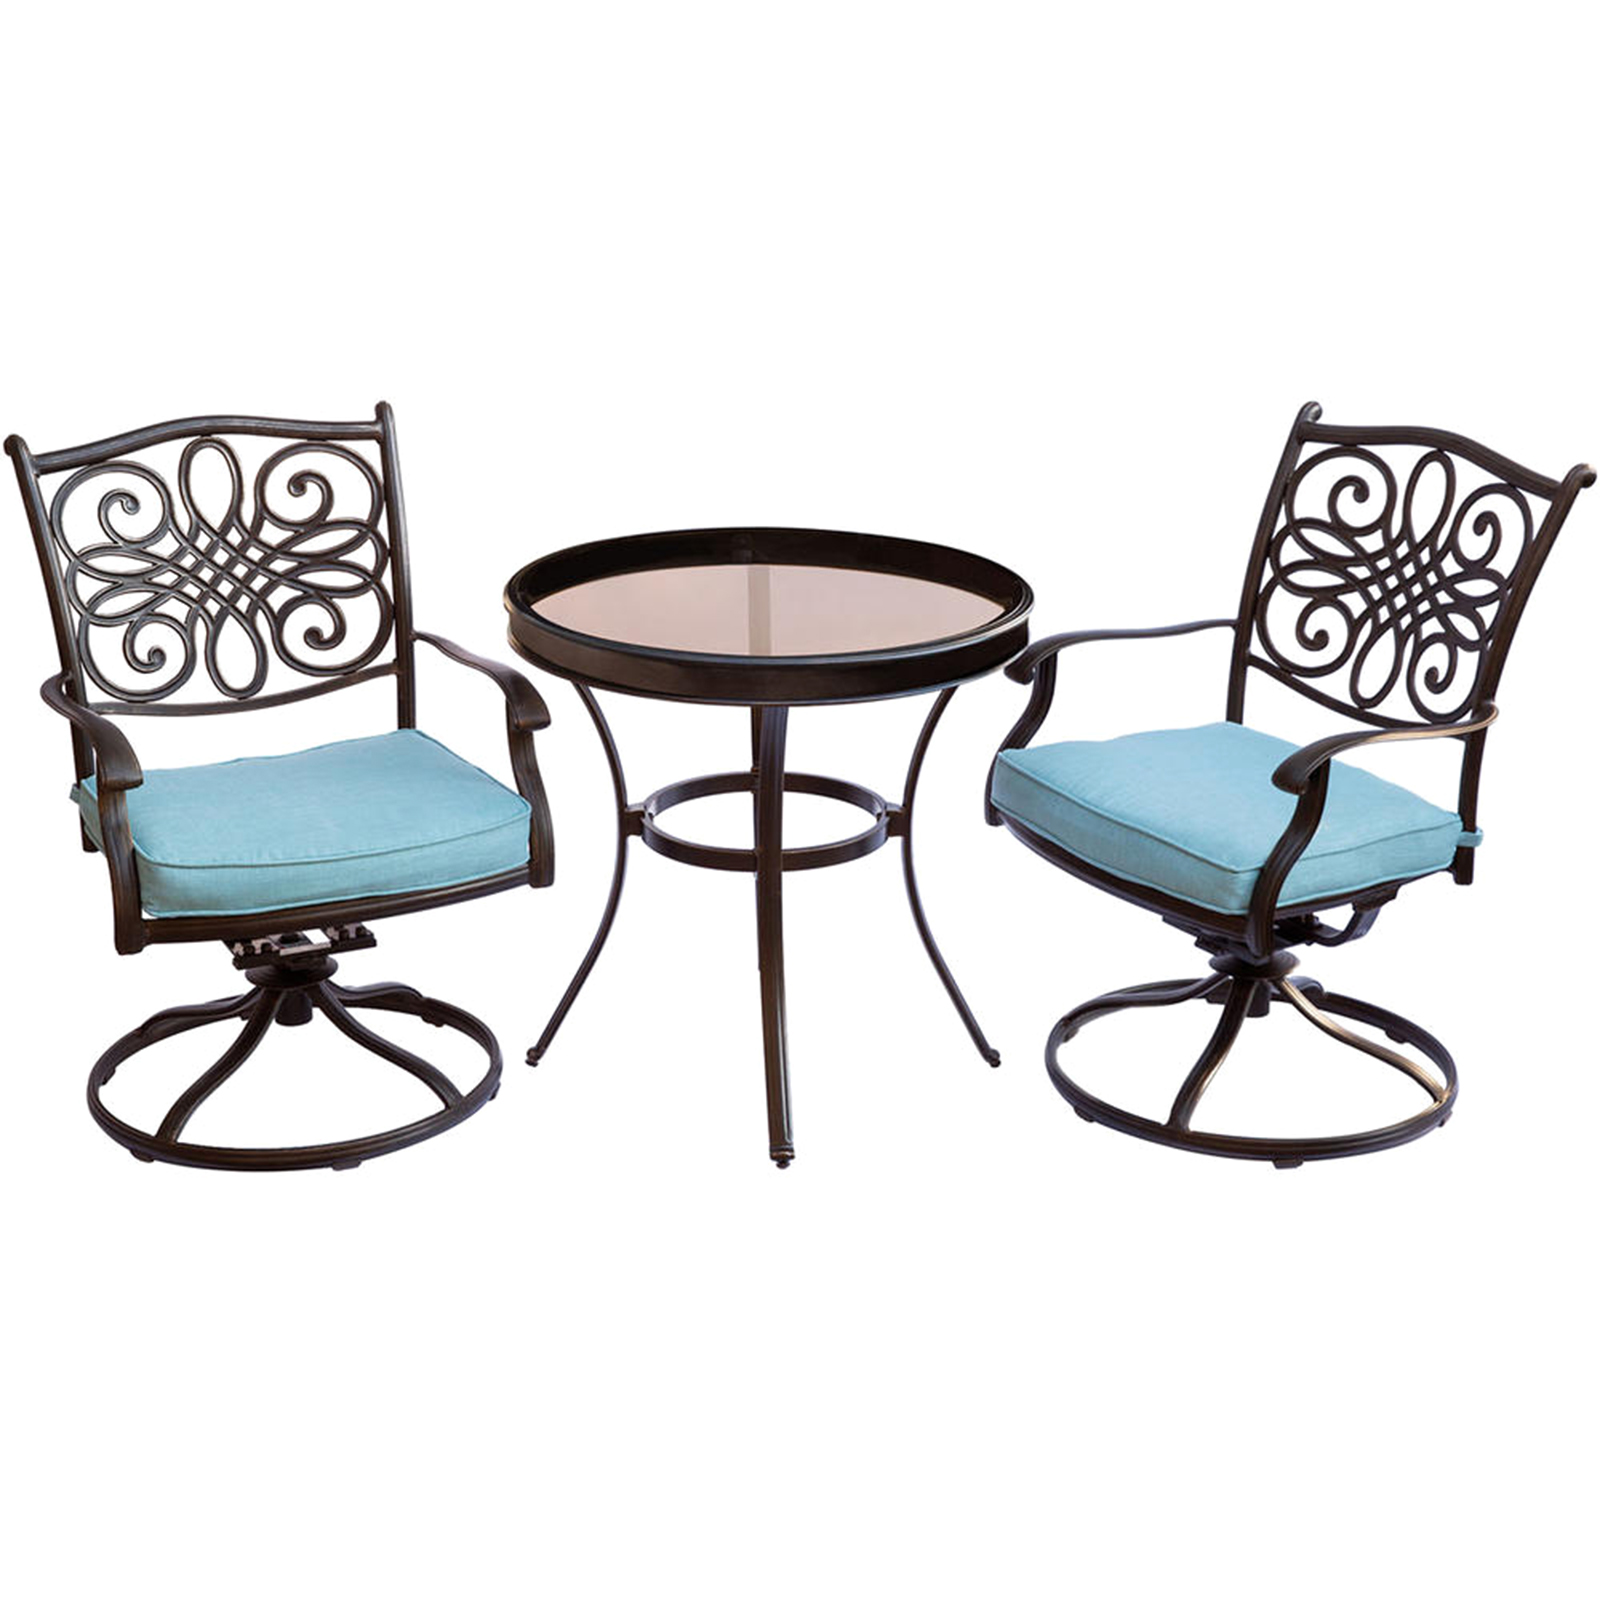 bistro set with swivel chairs cleo pedicure chair parts hanover traditions 3pc w cushions sears